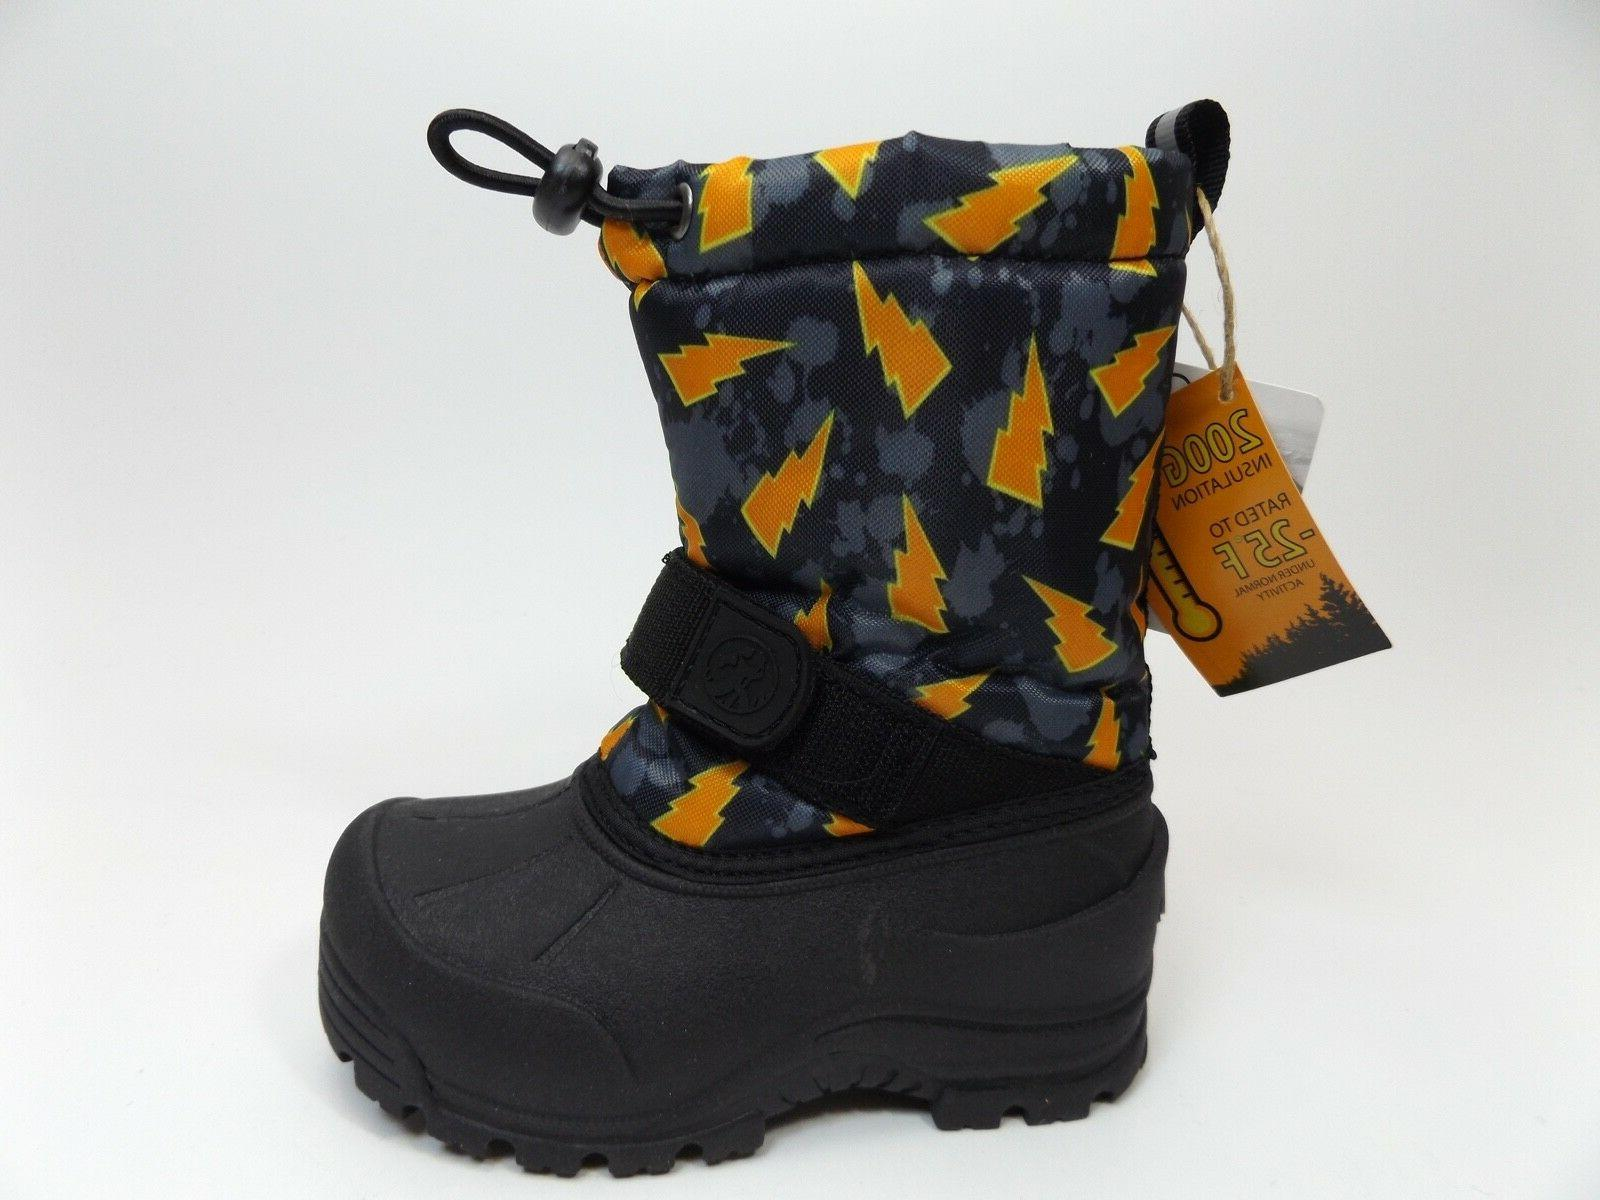 Northside ICICLE Boots THERMOLIT NEW 8960